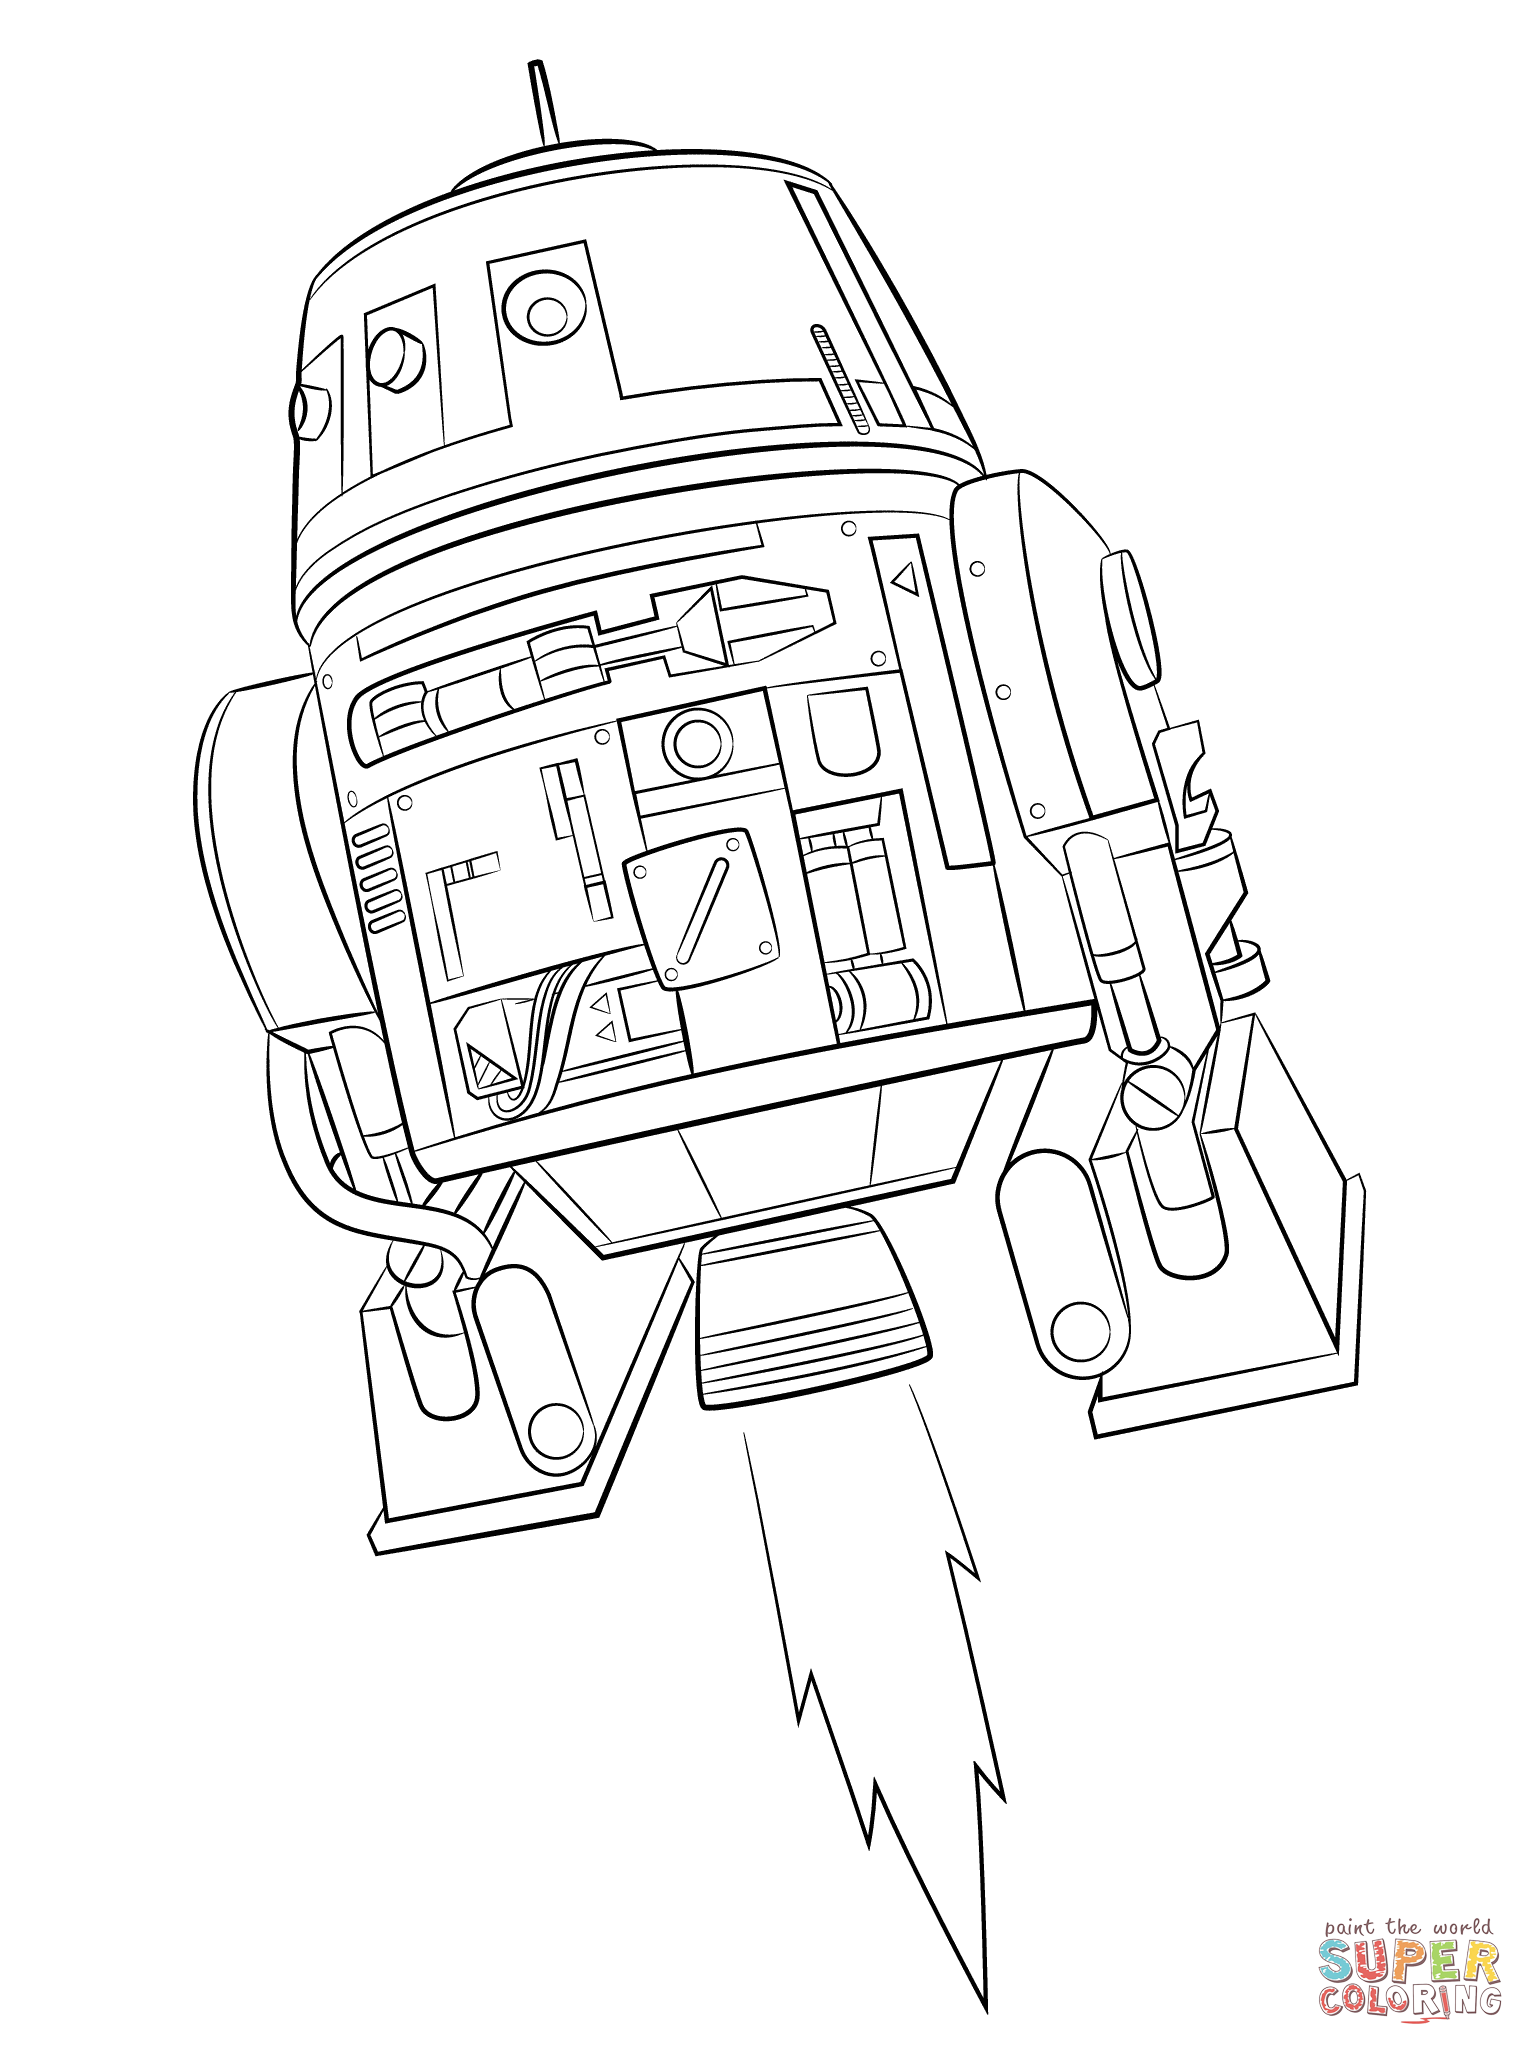 Star Wars Rebels Chopper | Super Coloring | LineArt: Star Wars ...